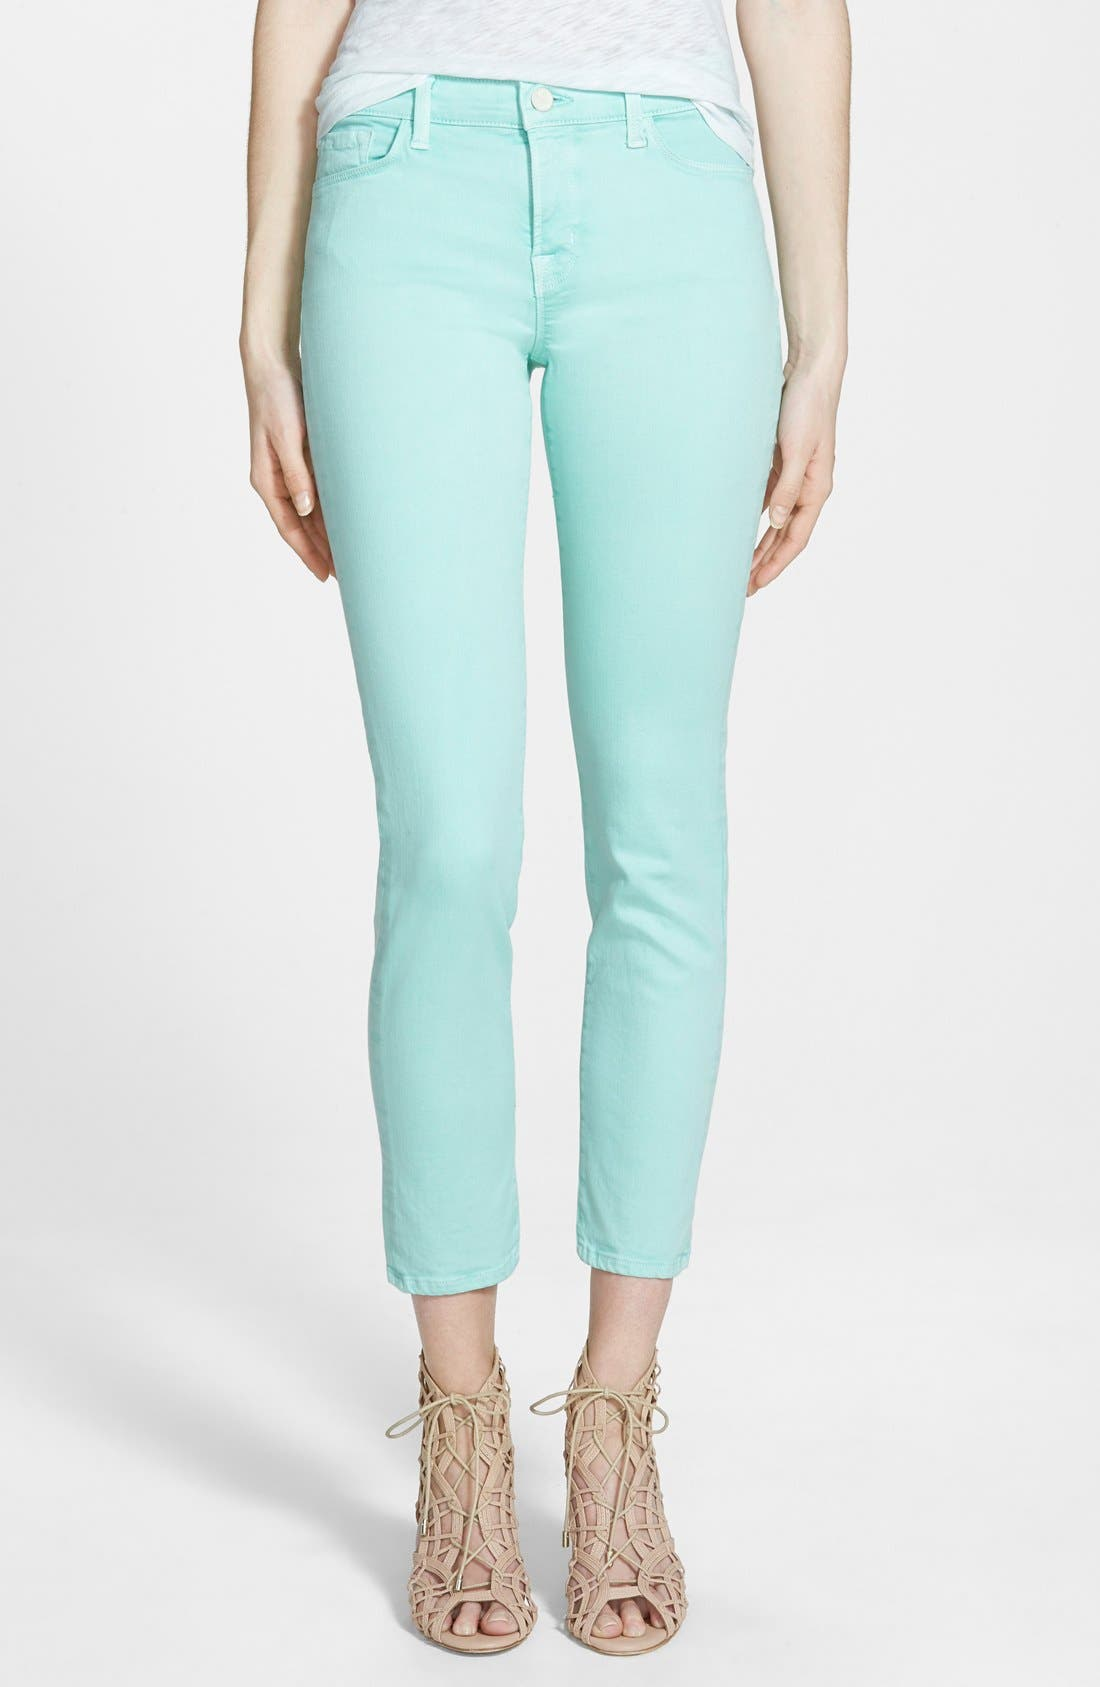 Alternate Image 1 Selected - J Brand 'Rail' Mid Rise Super Skinny Jeans (Sea Green)